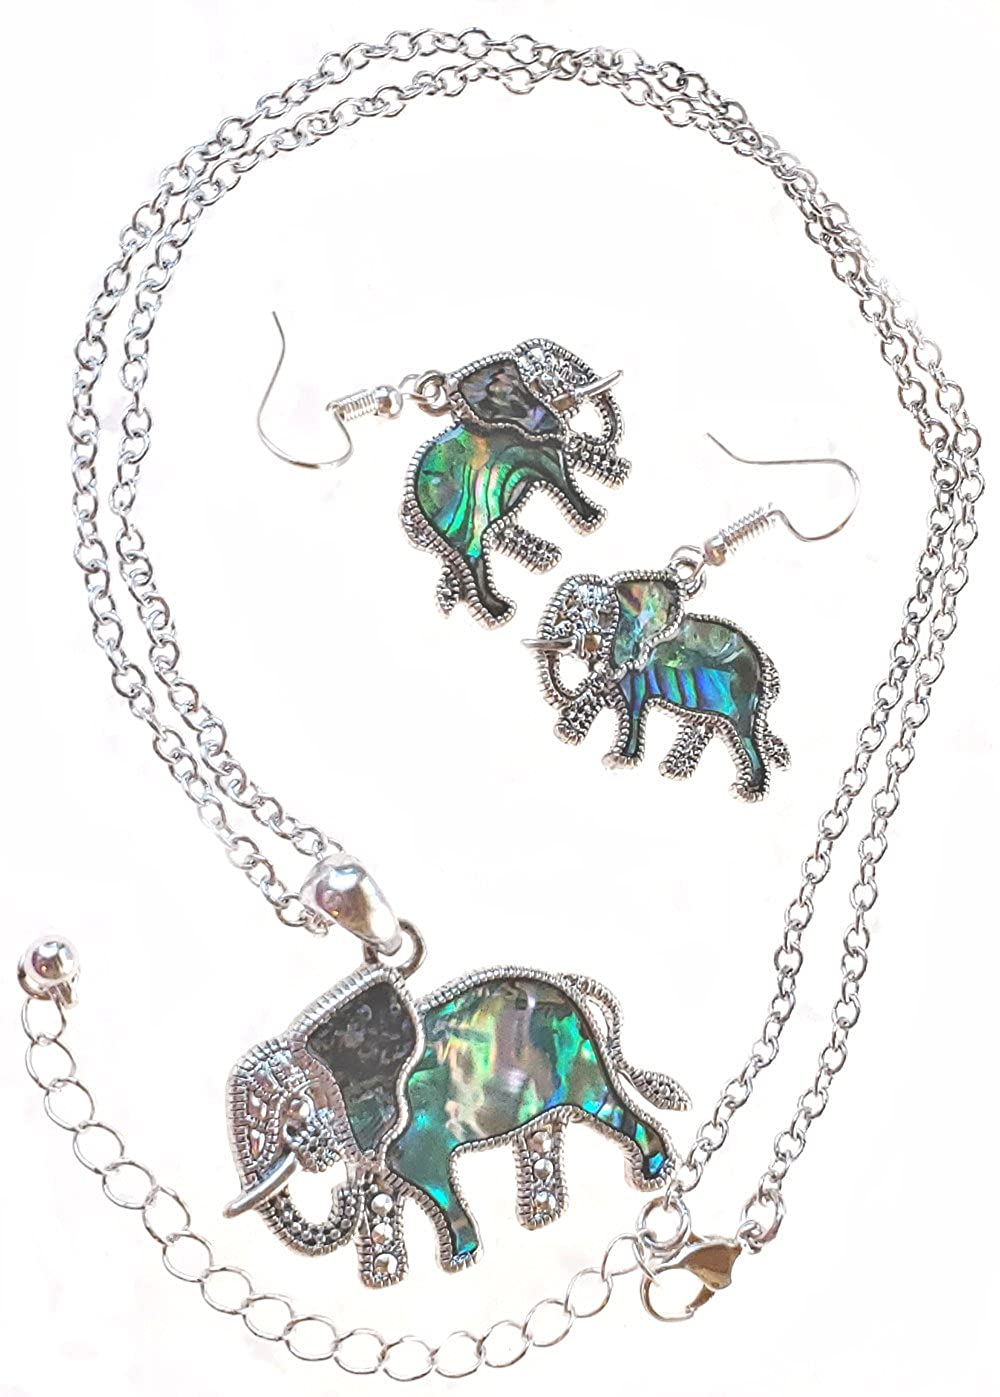 Abalone Chain and Earrings Silver Plated LaceyLady Collections Elephant Pendant